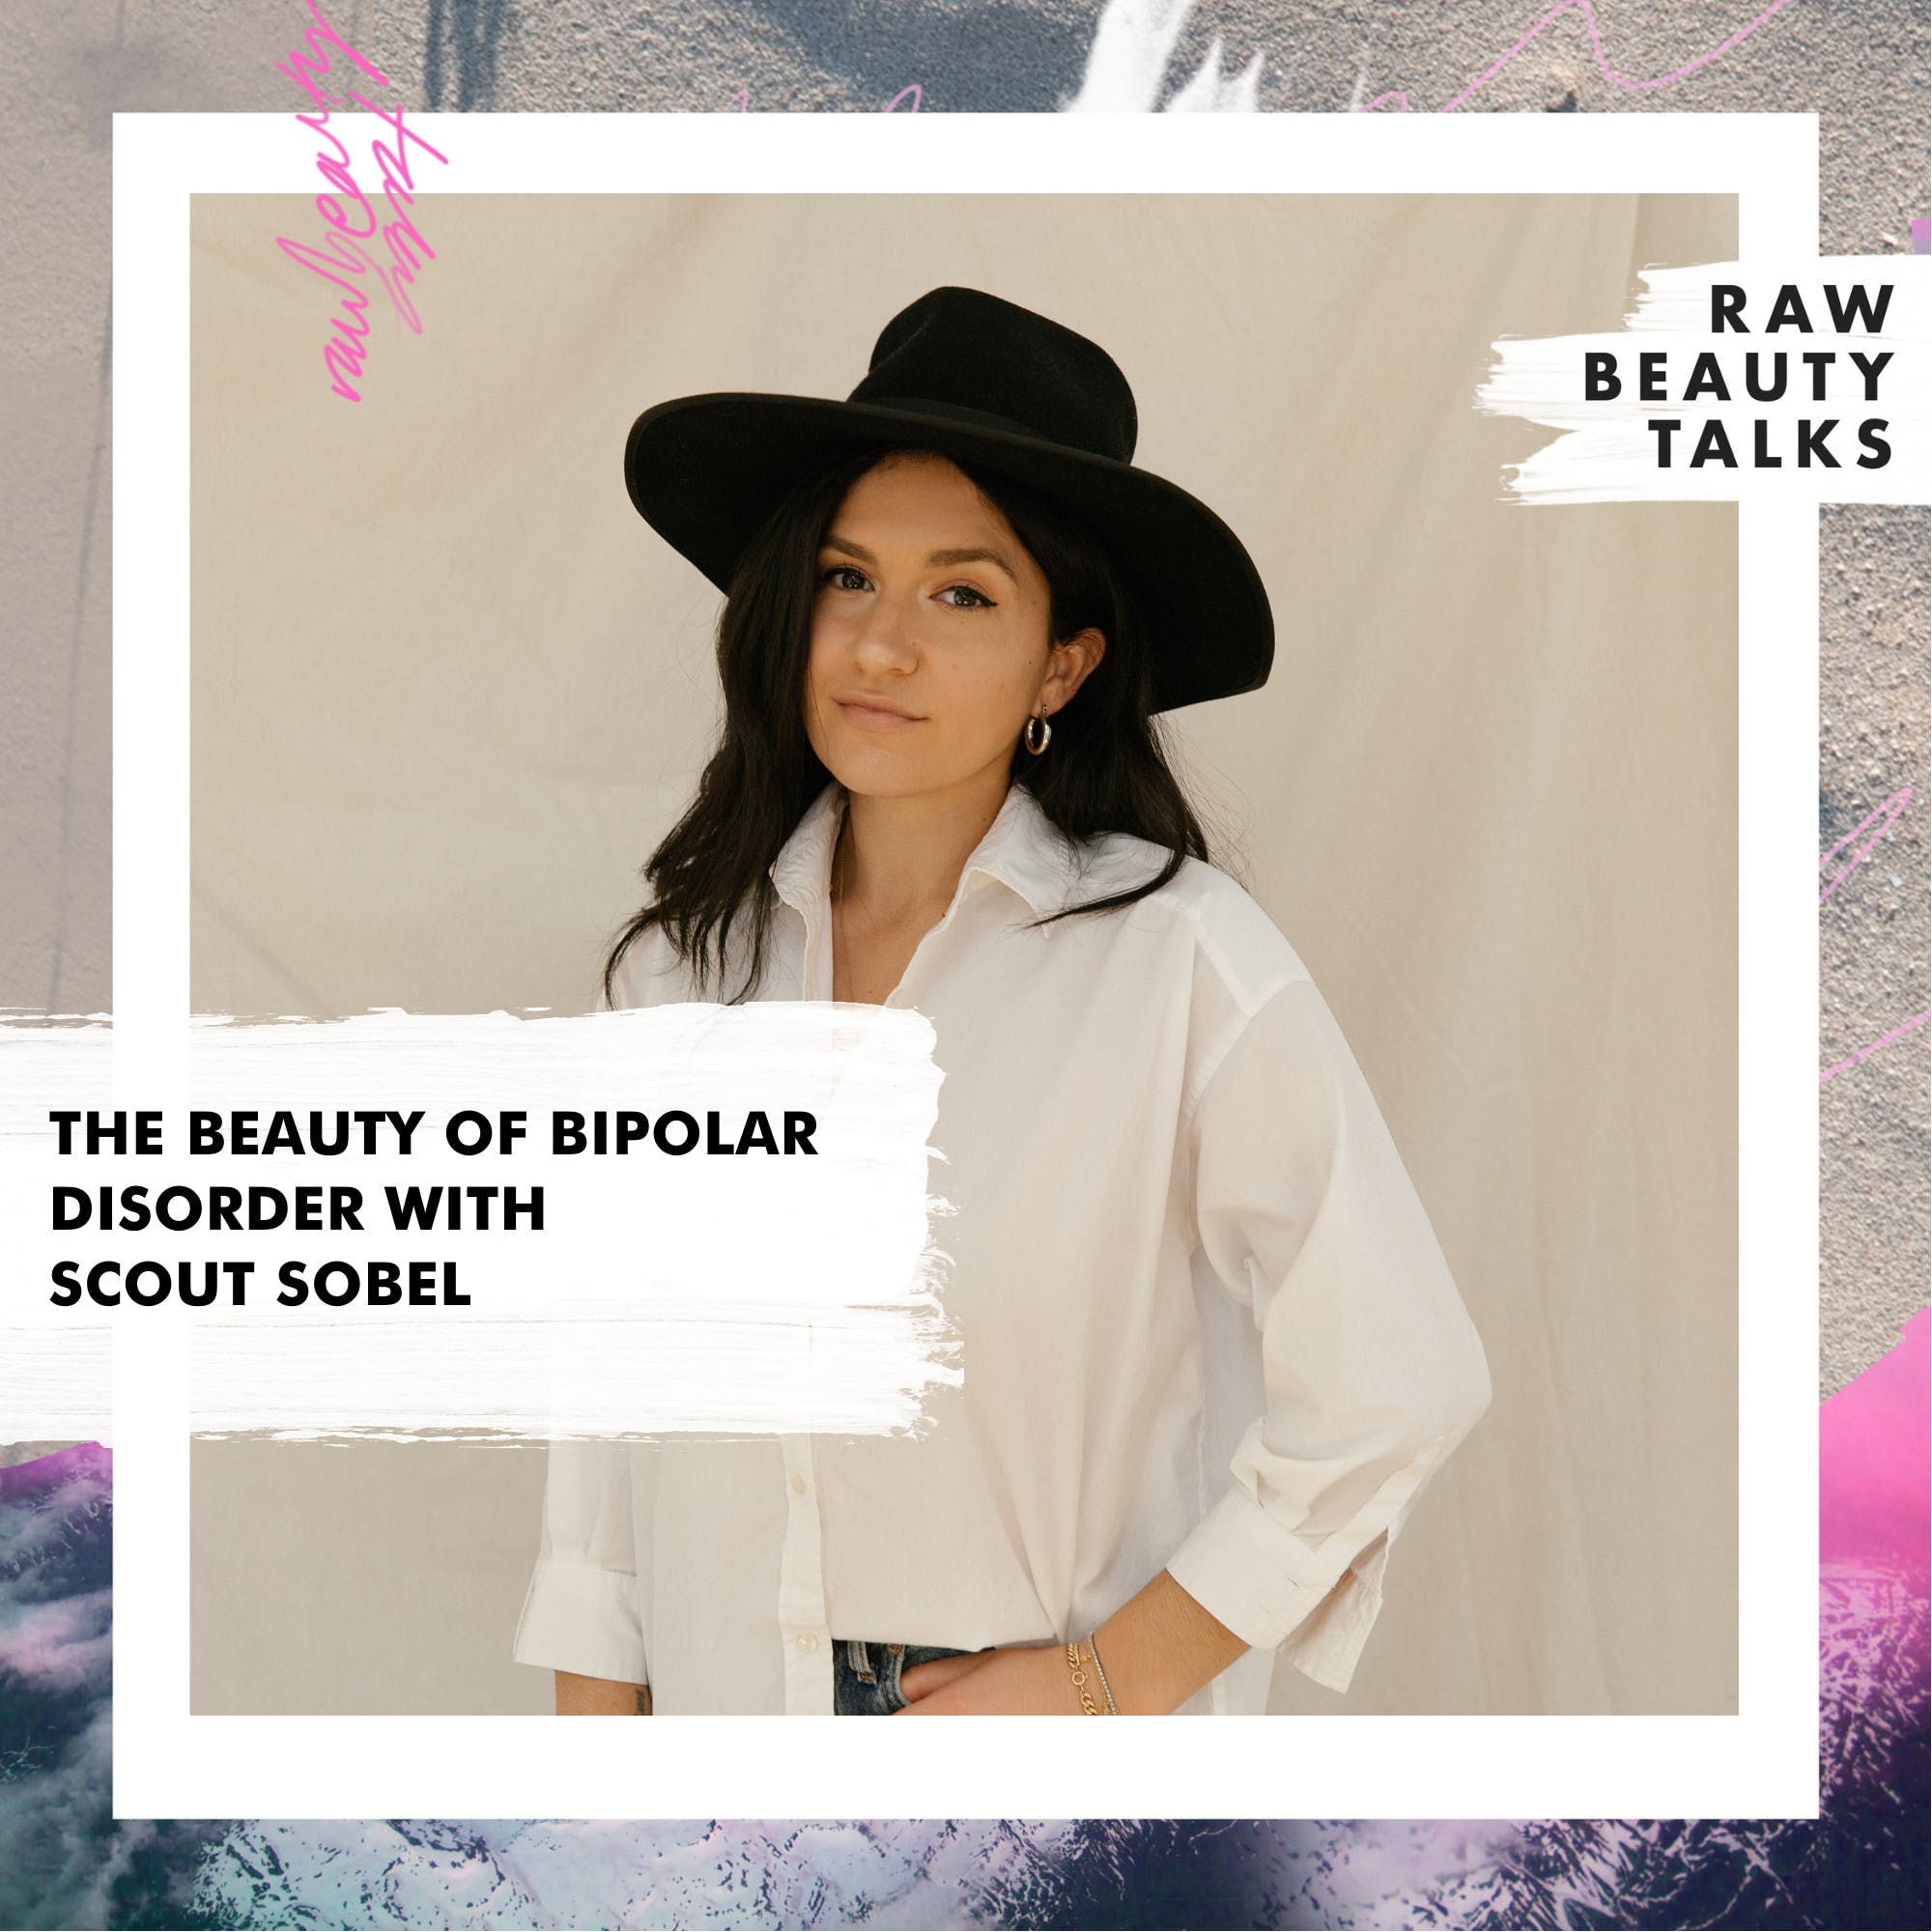 The Beauty of Bipolar Disorder with Scout Sobel